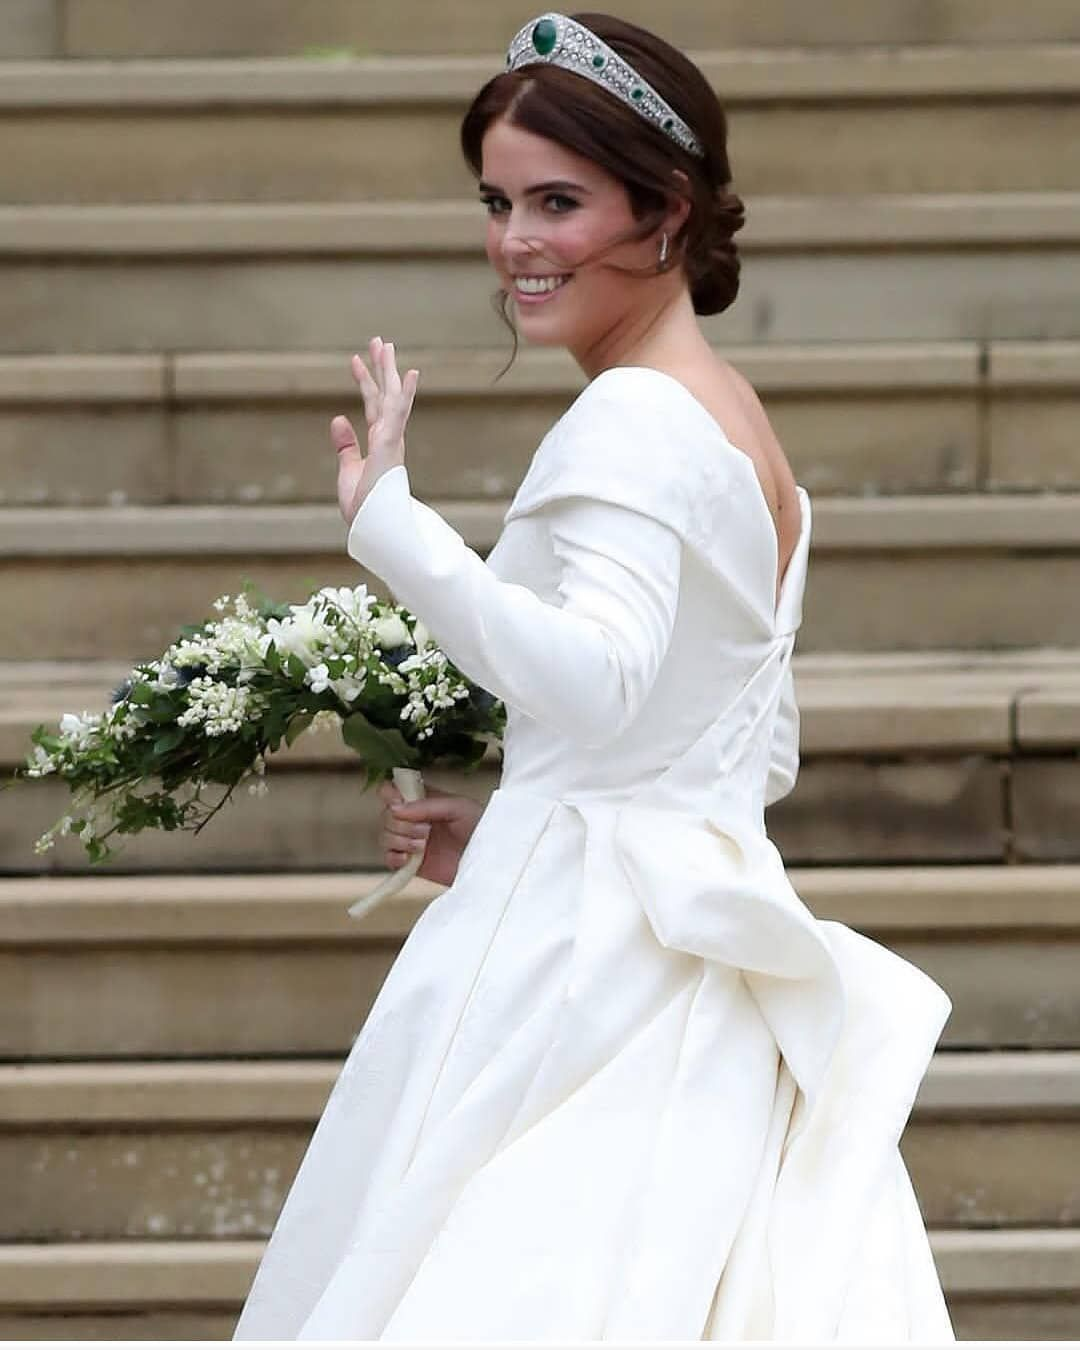 Here Comes The Gorgeous Bride Princess Eugenie Is Looking Absolutely Stunning In Her Wedding Gown Royal Wedding Dress Eugenie Wedding Princess Eugenie [ 1350 x 1080 Pixel ]